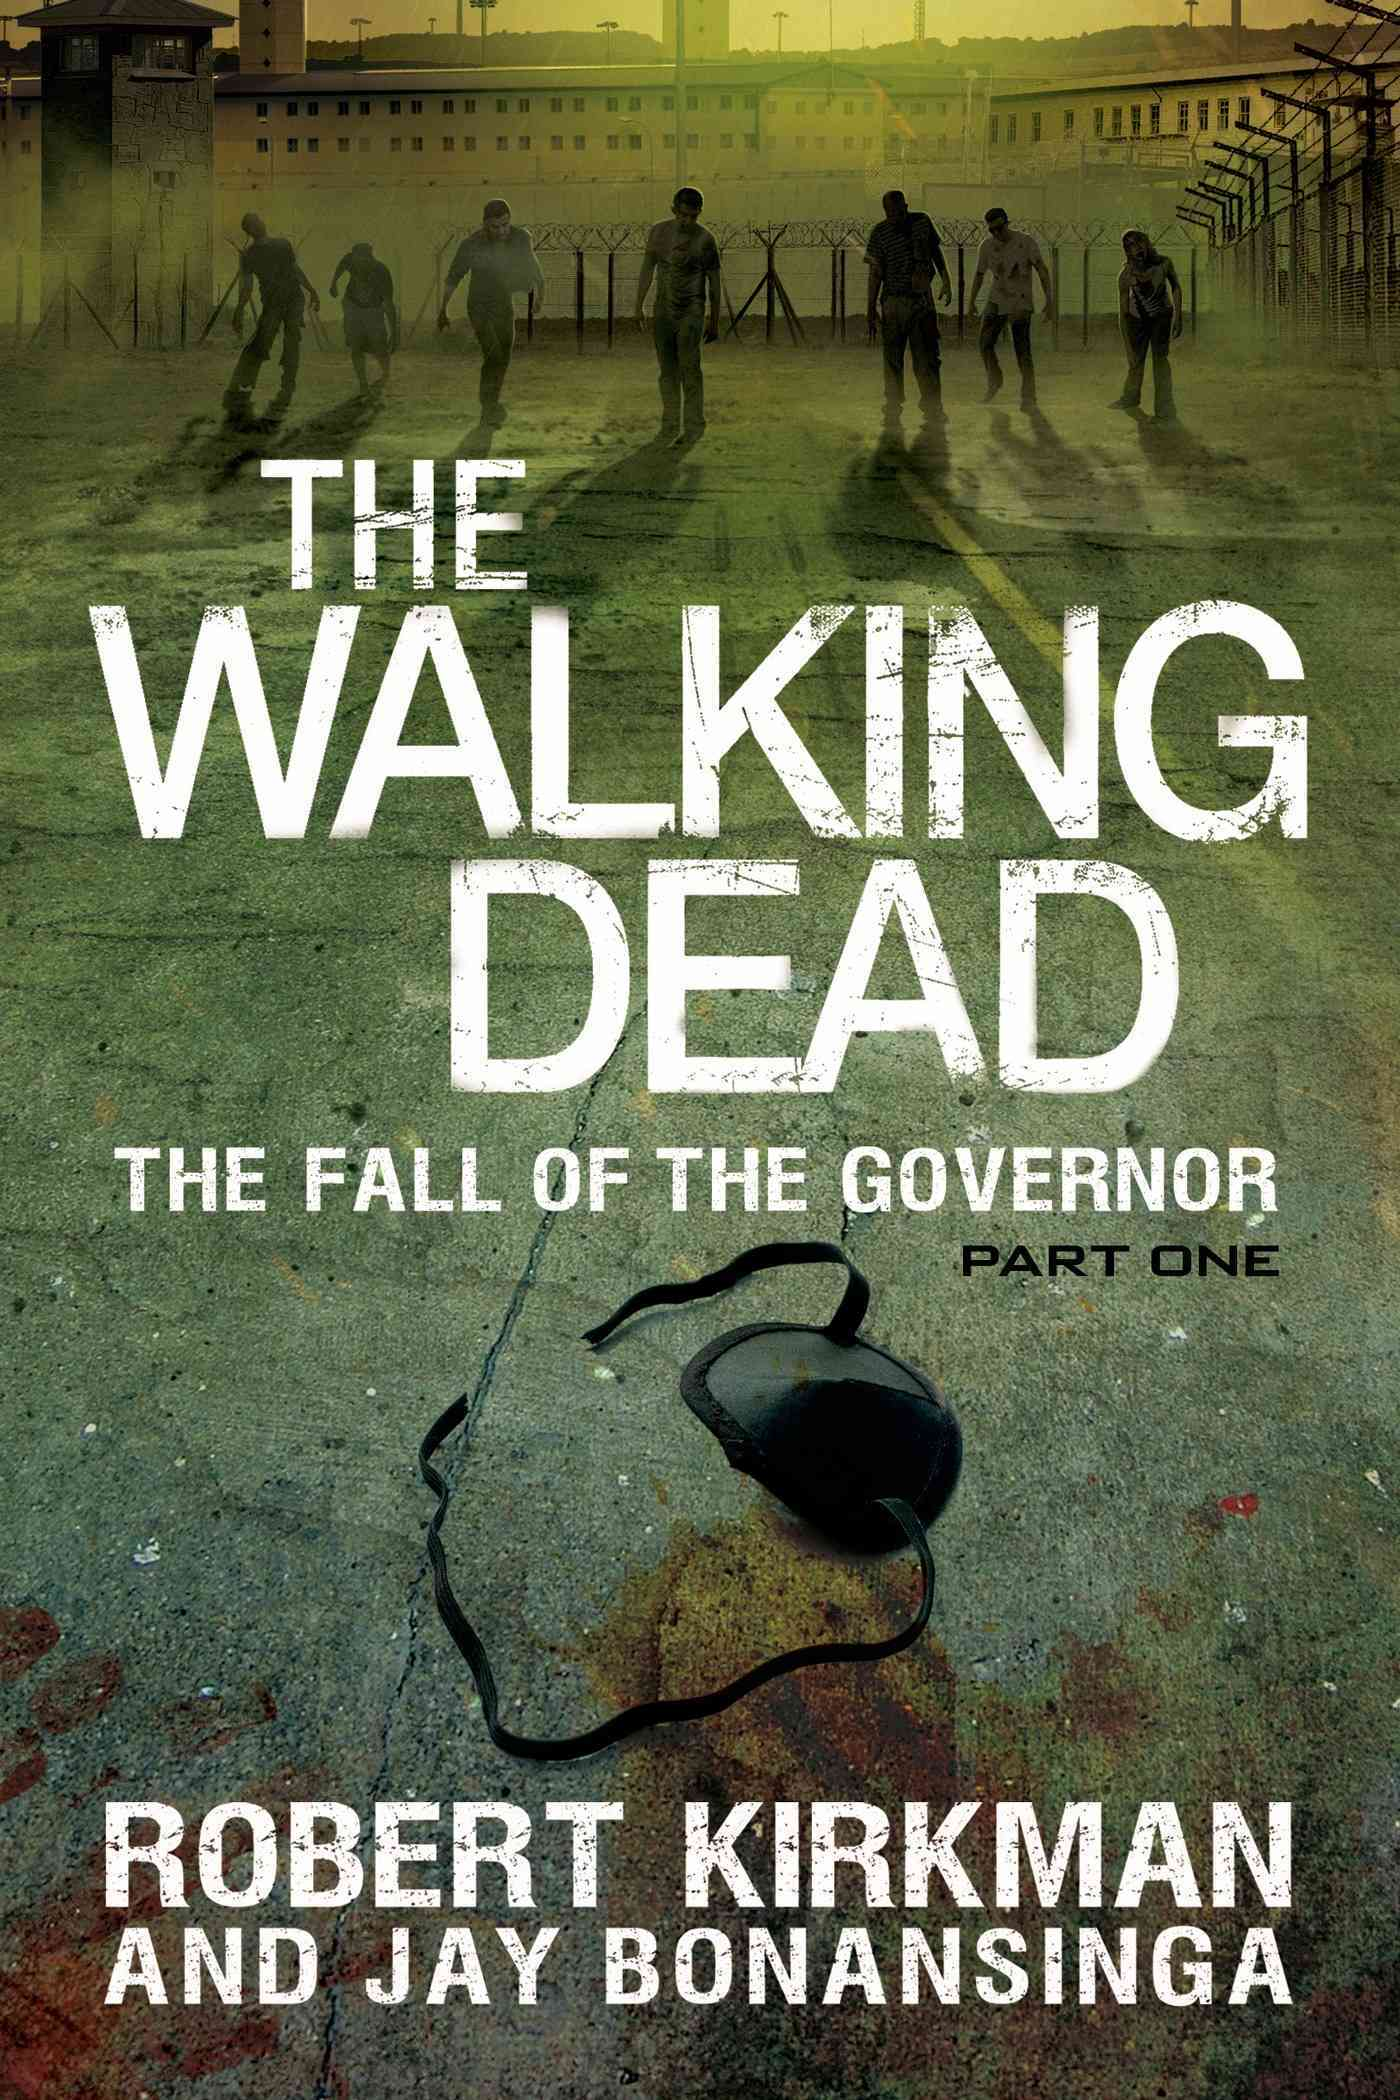 The Walking Dead: The Fall of the Governor Part One (Paperback)